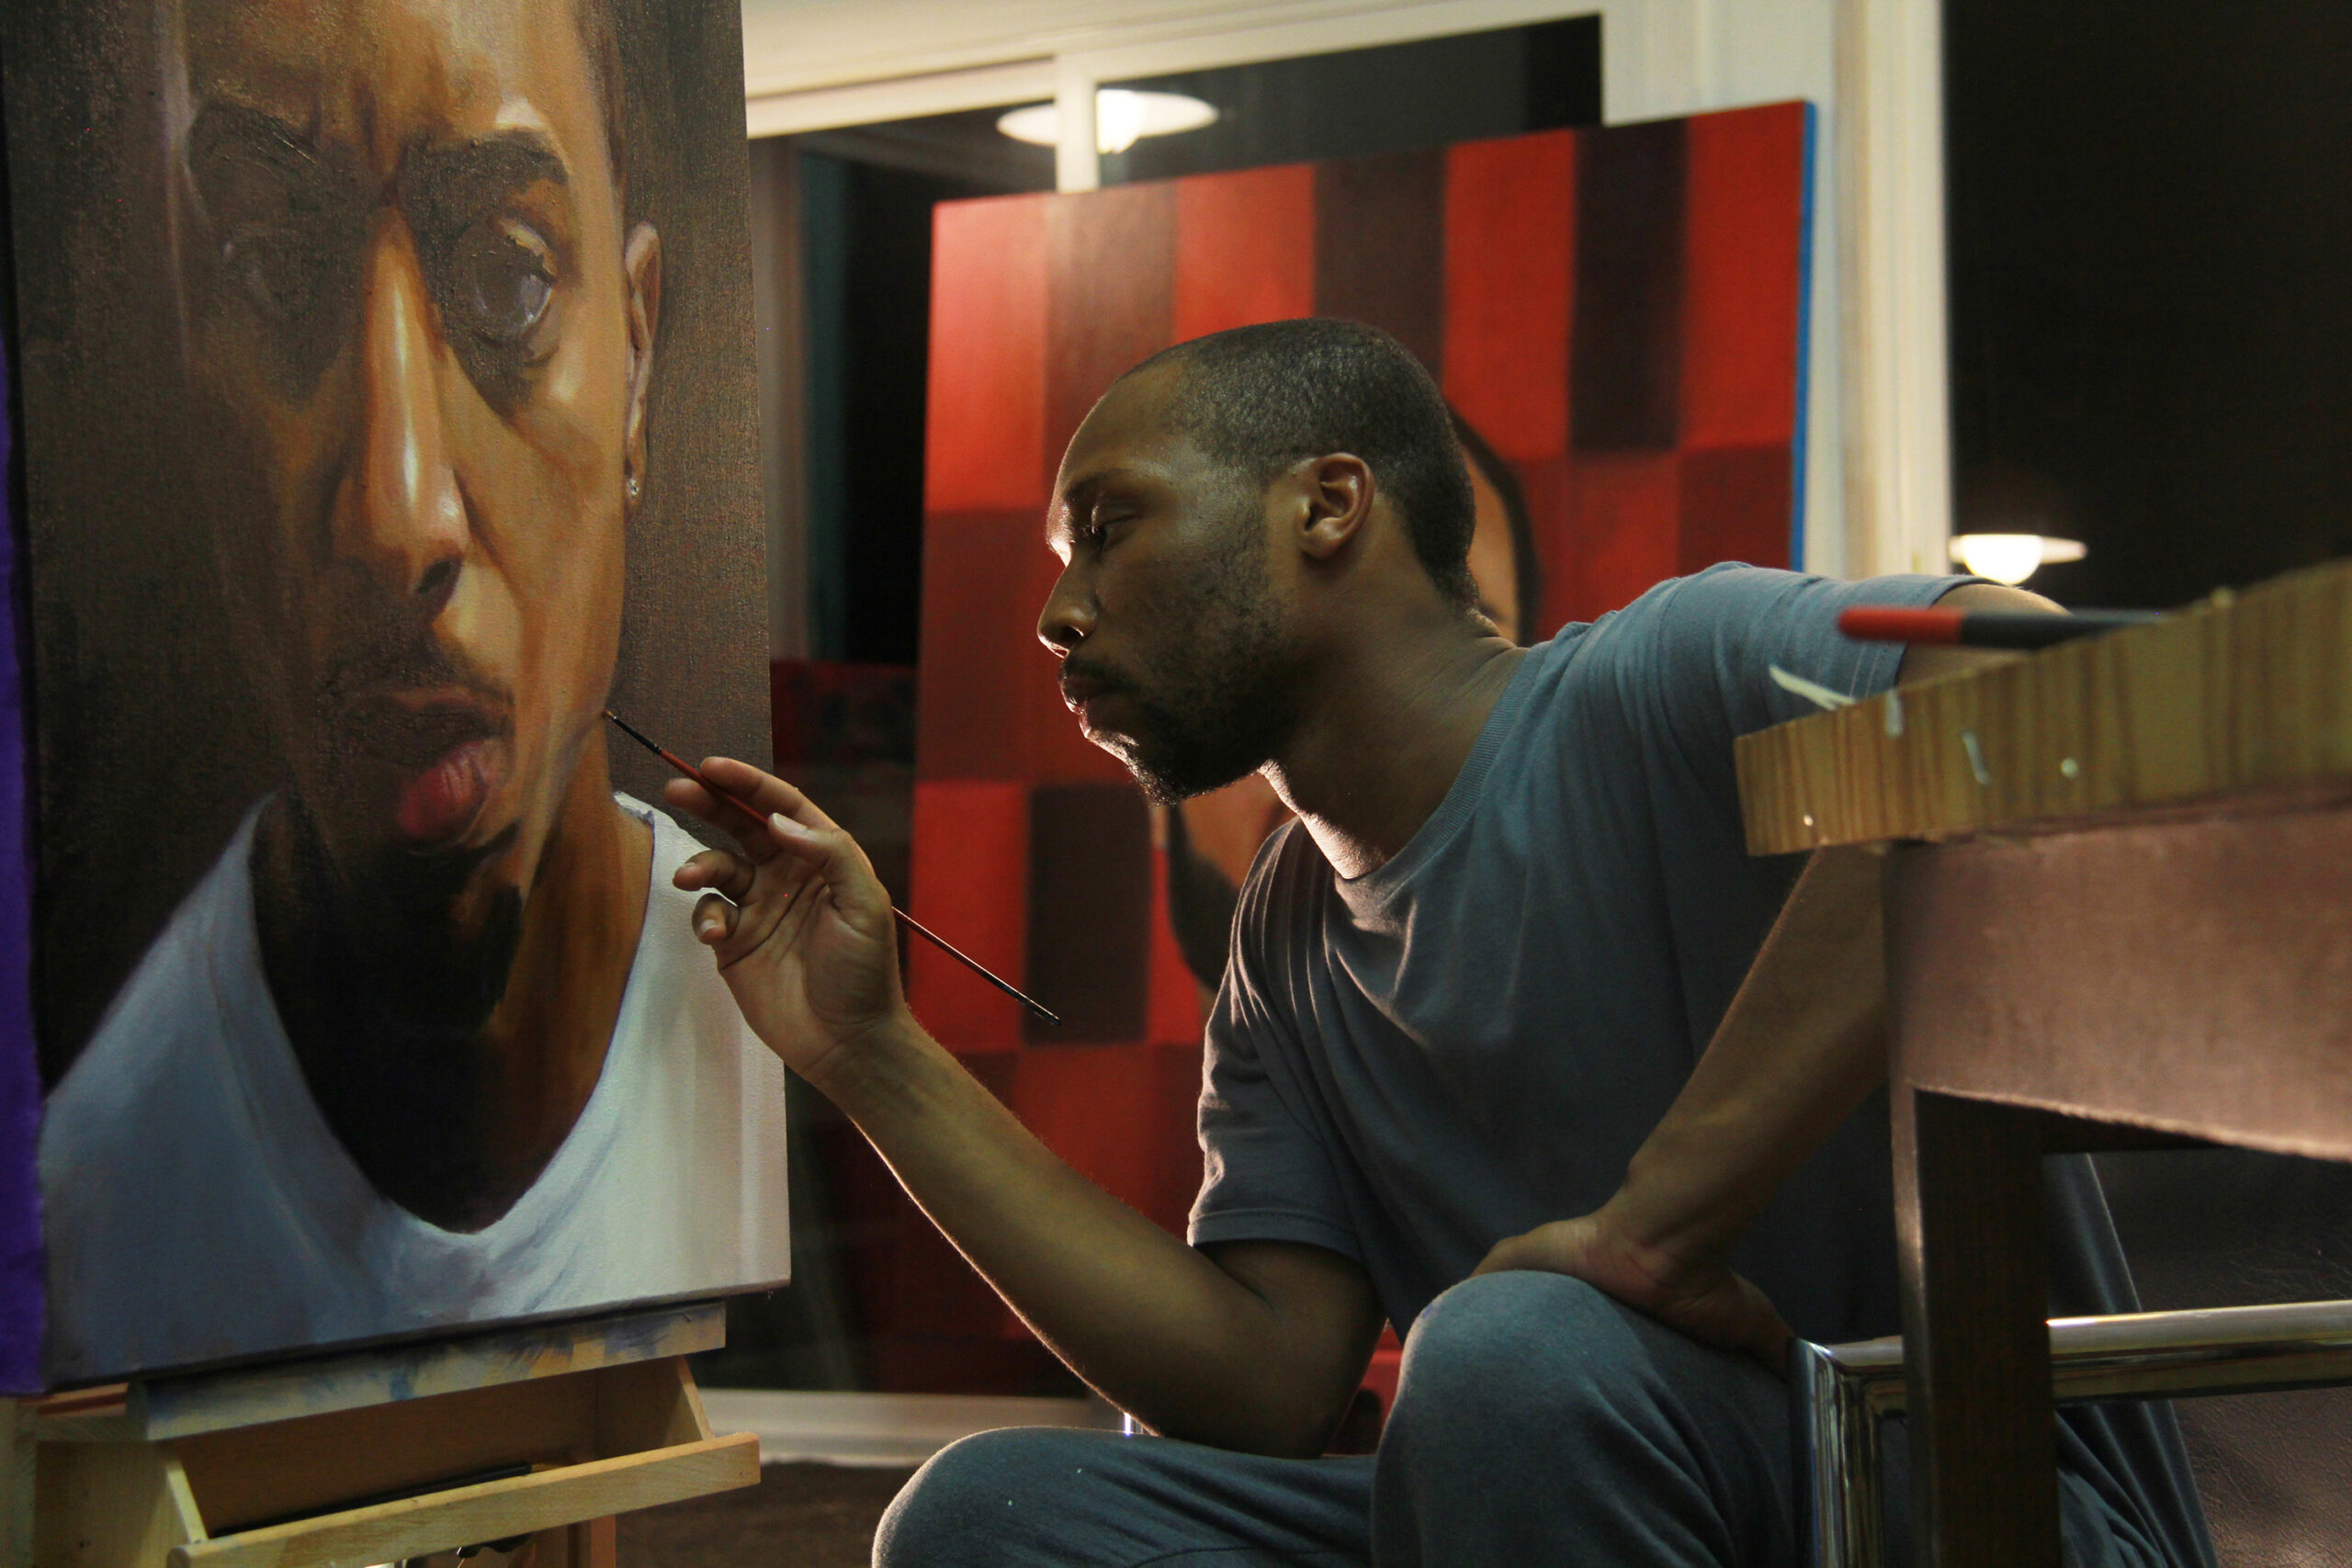 An artist crouches in front of a large portrait of a Black man and works on it with a small paintbrush